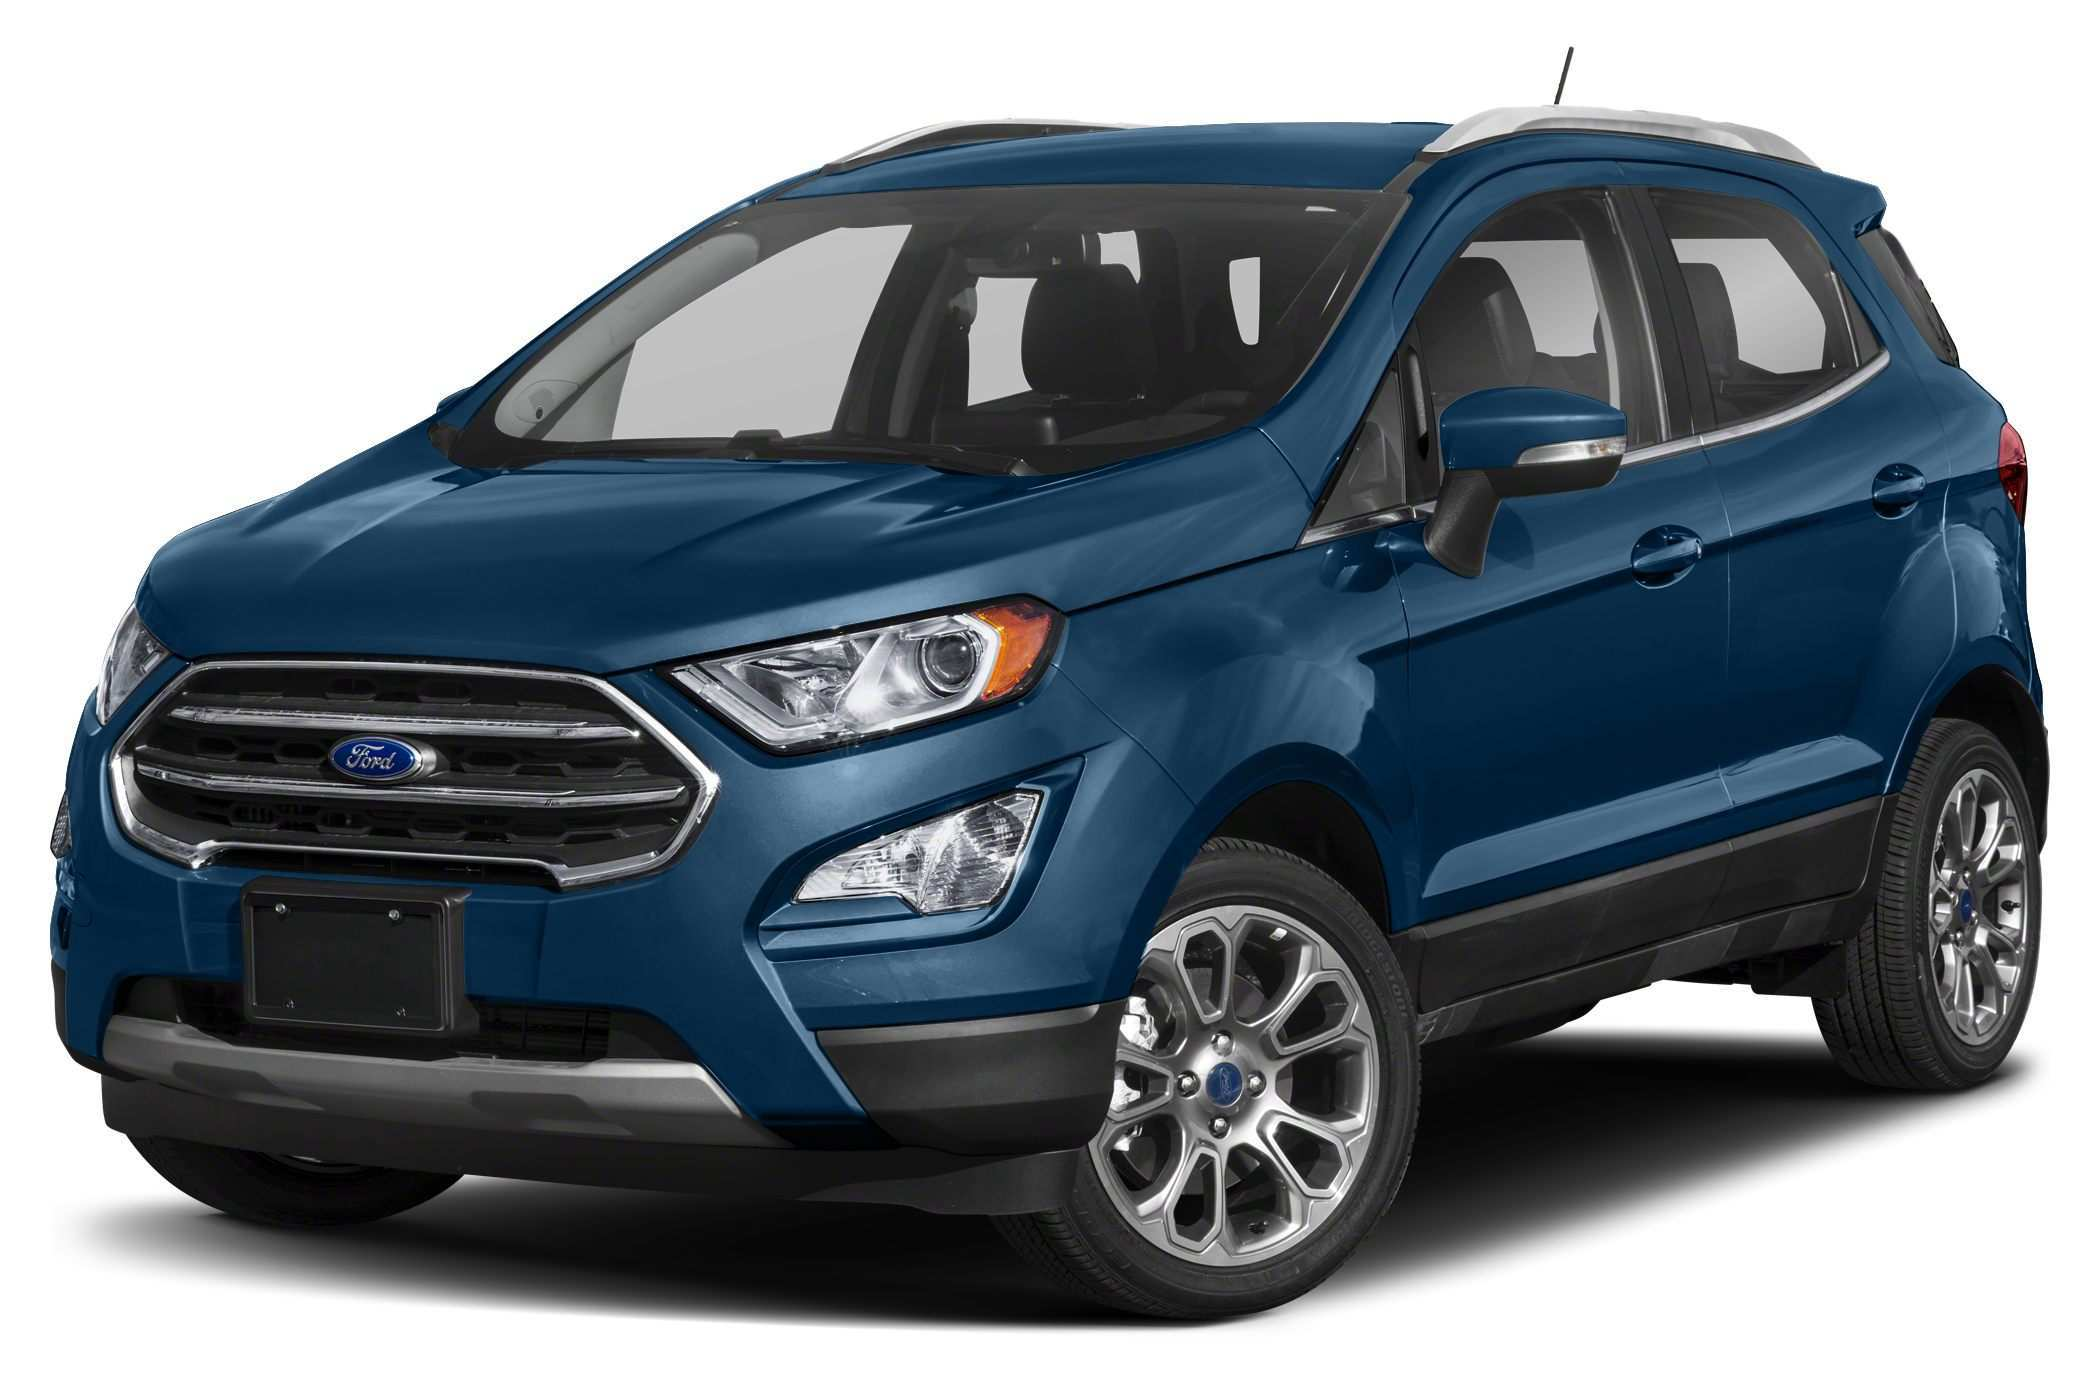 81 A 2020 Ford Ecosport Picture